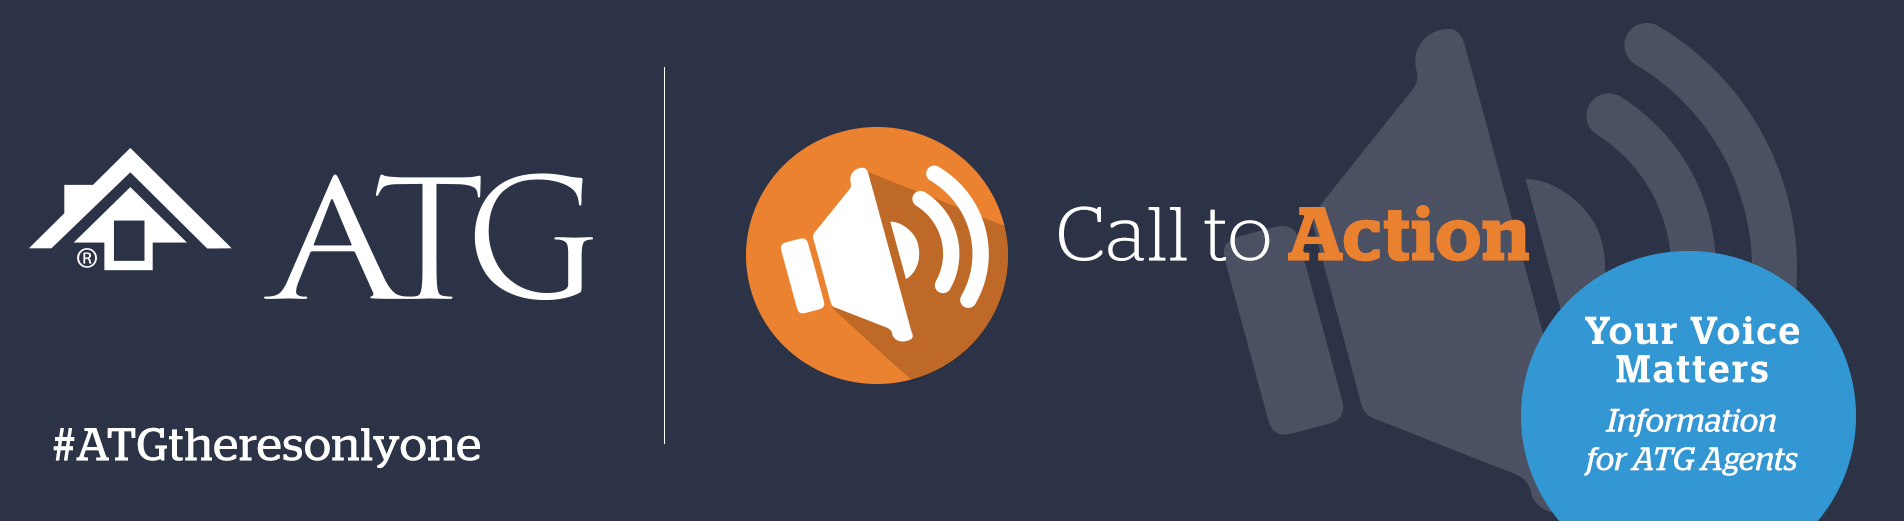 ATG Call to Action banner